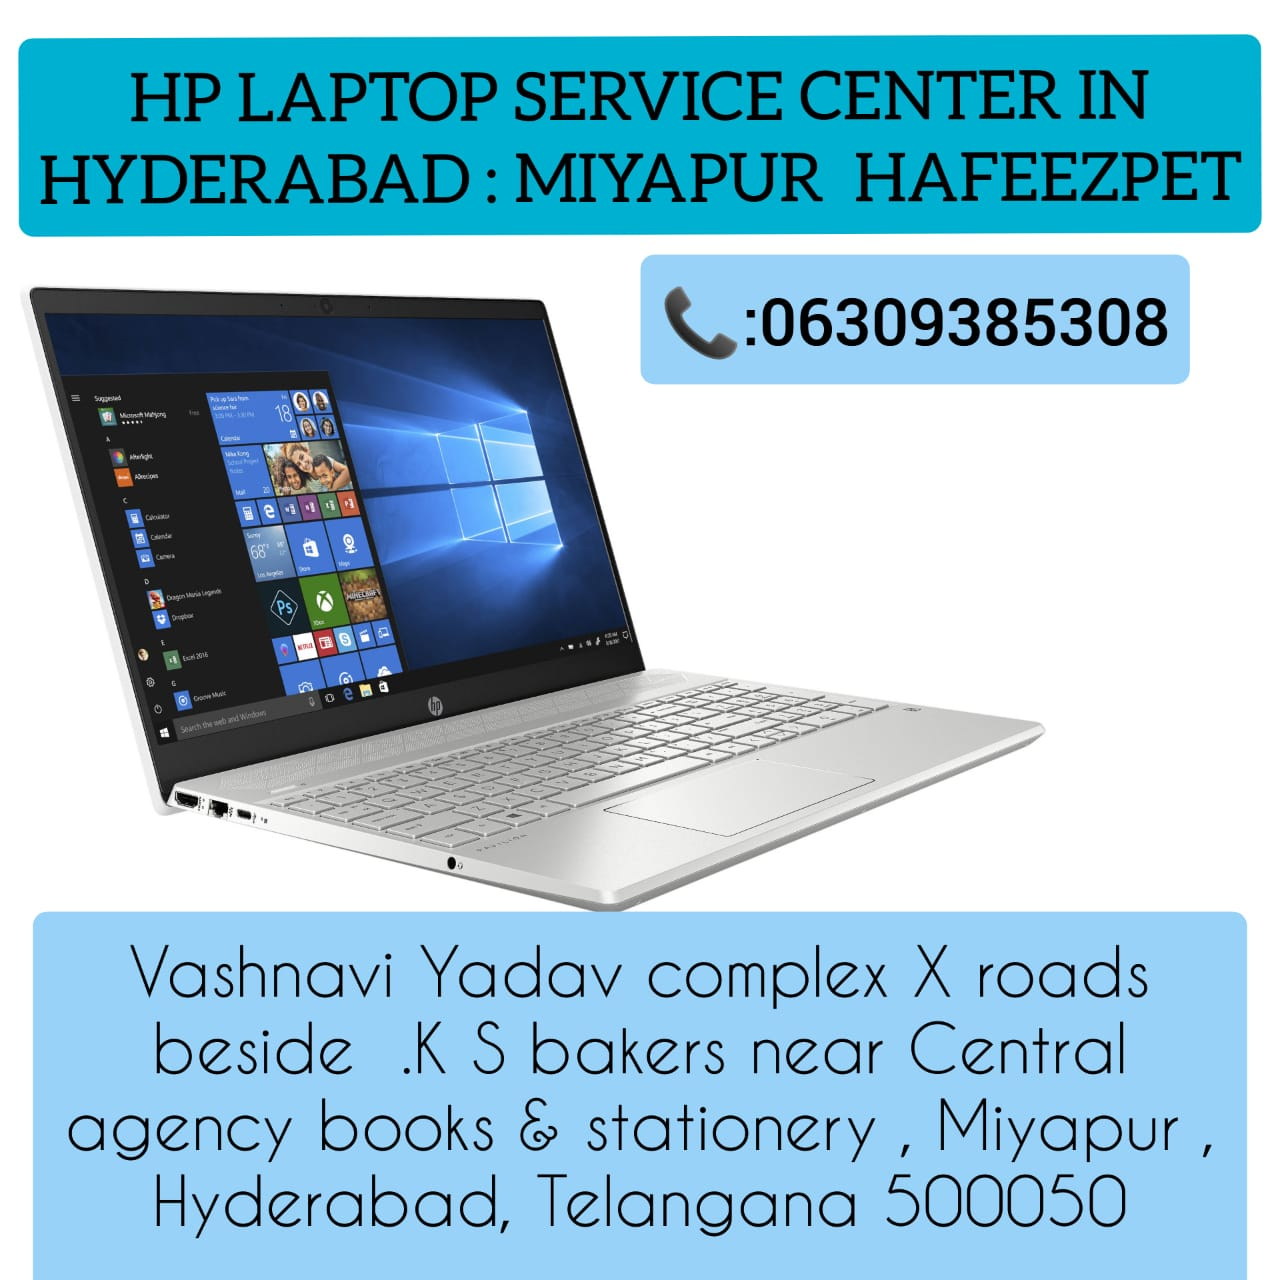 Hp Laptop Service Center In Hyderabad Miyapur 06